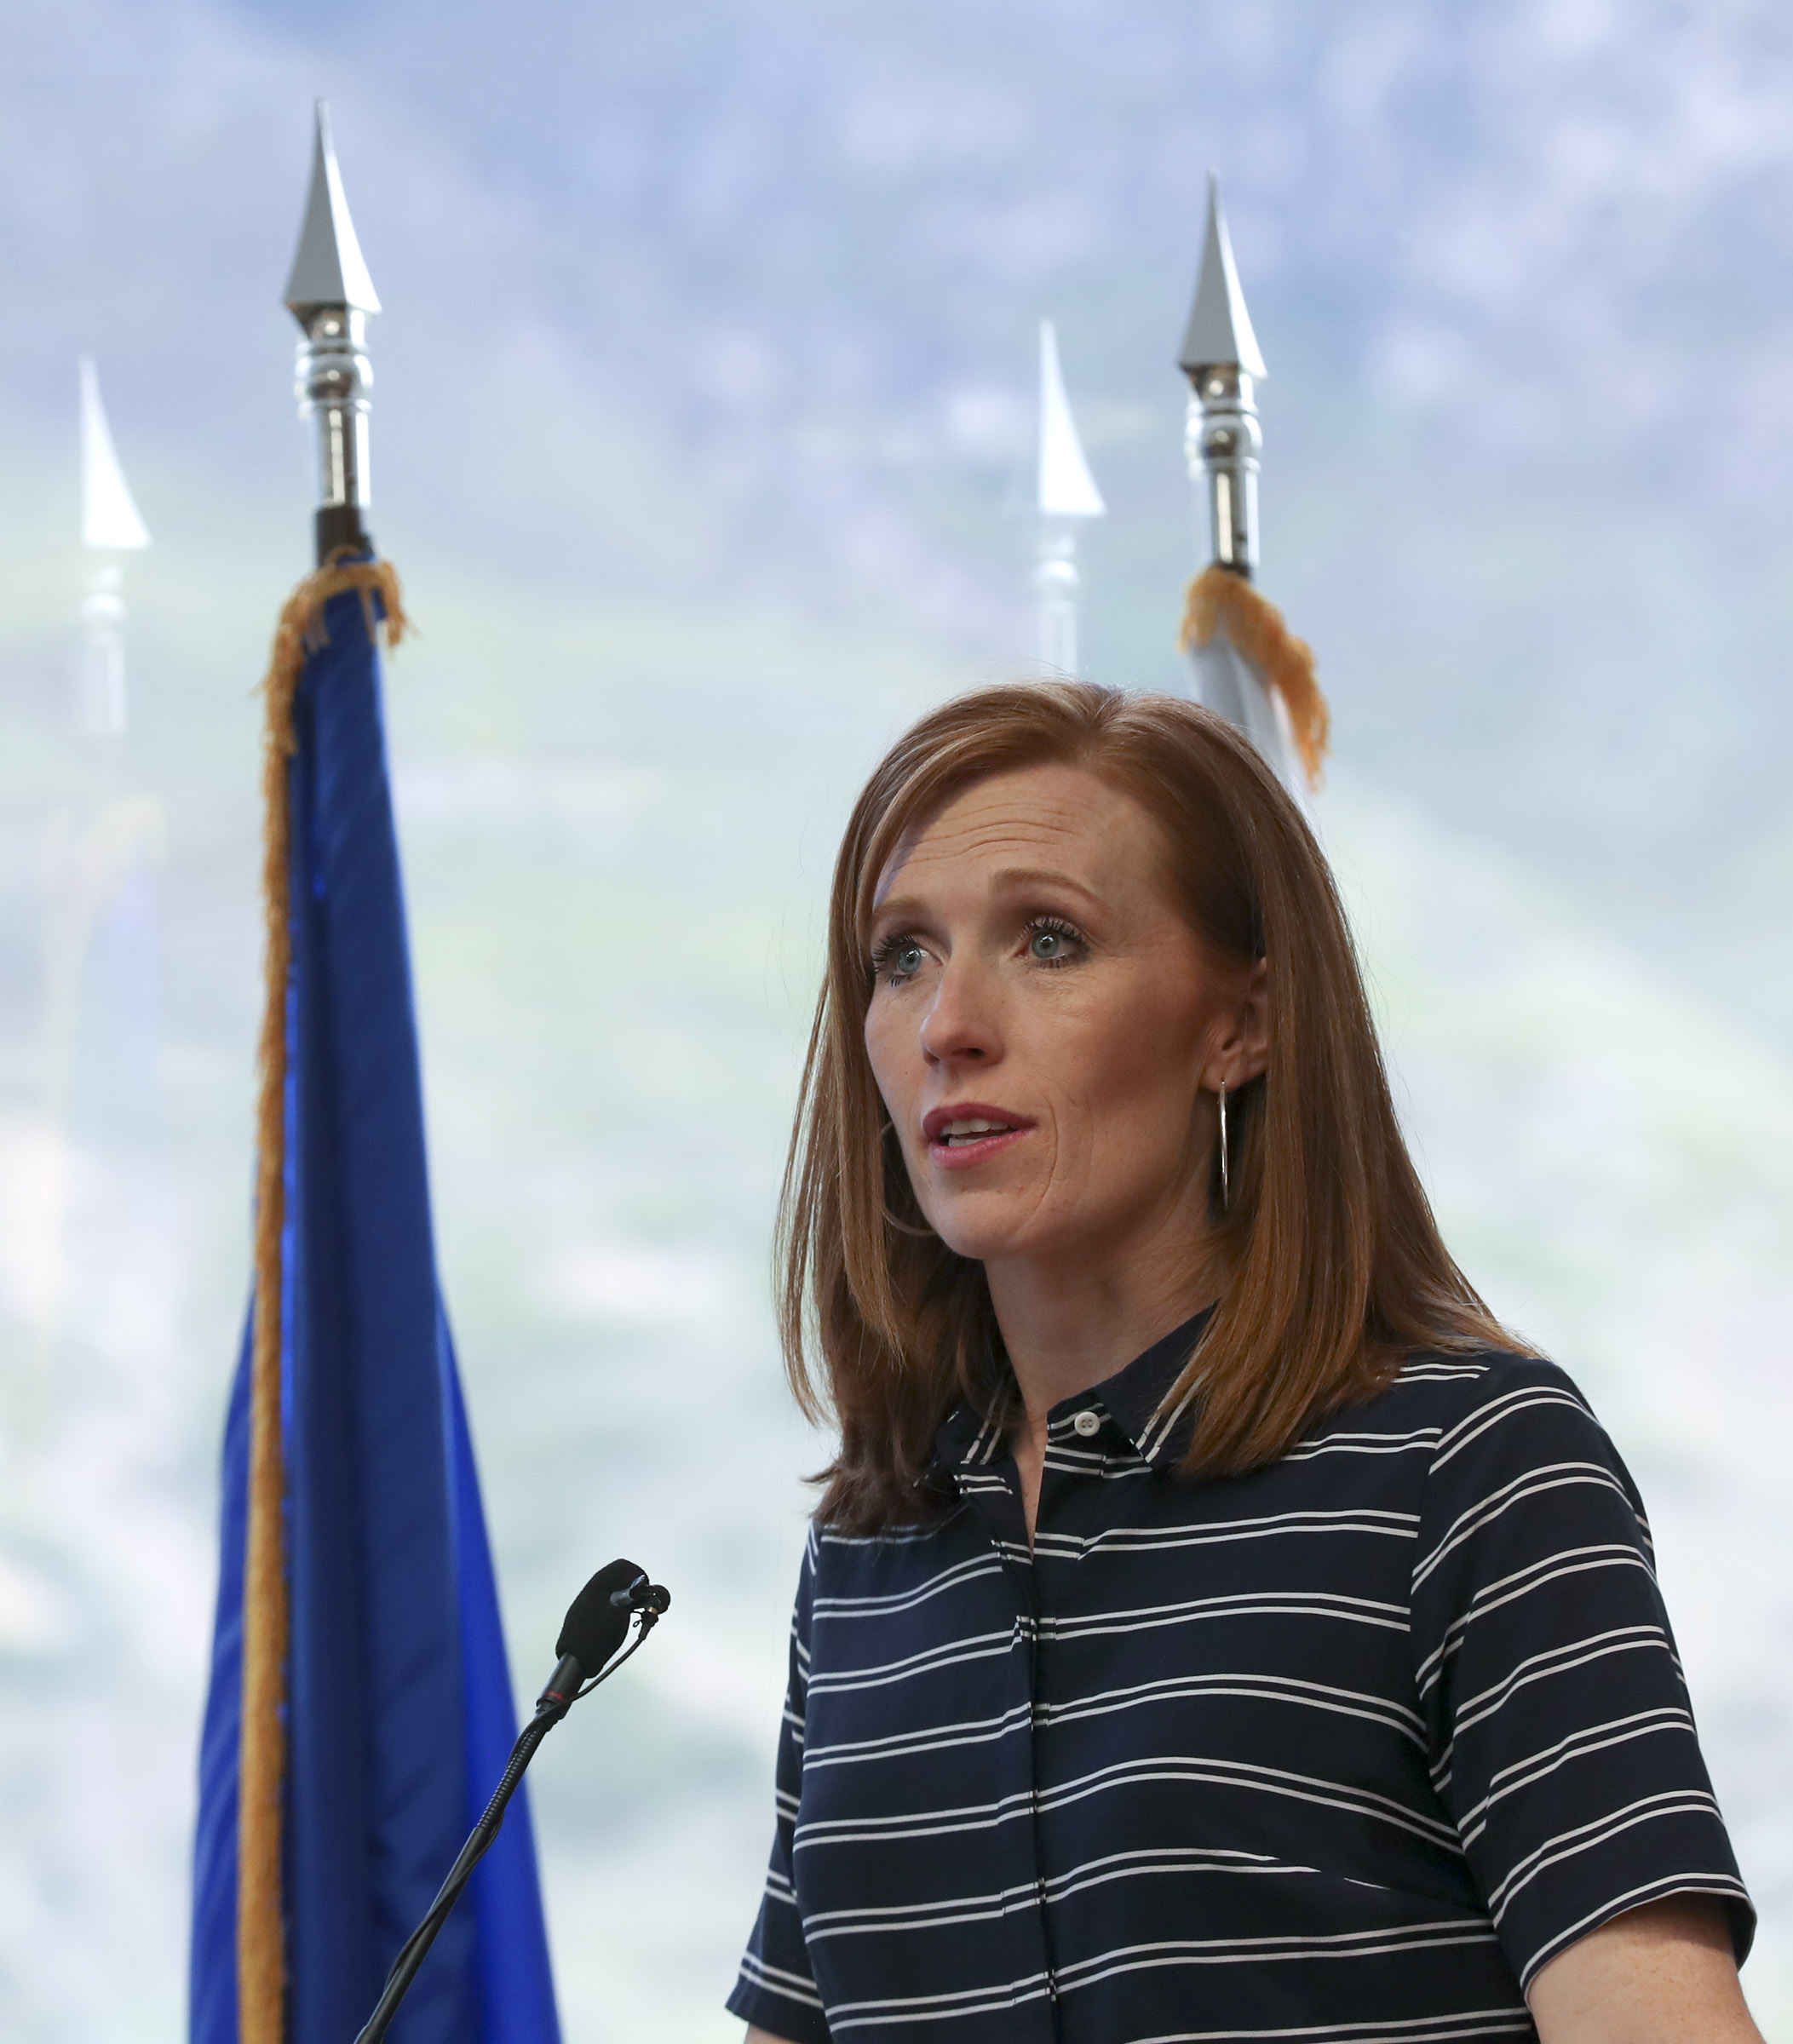 Jennie Taylor talks about her husband, Maj. Brent Taylor, who was killed in Afghanistan in 2018, during a ceremony where Taylor's name was added to the Reflection Room Memorial Wall in the Wilkinson Center on the BYU campus in Provo on Thursday, May 23, 2019.